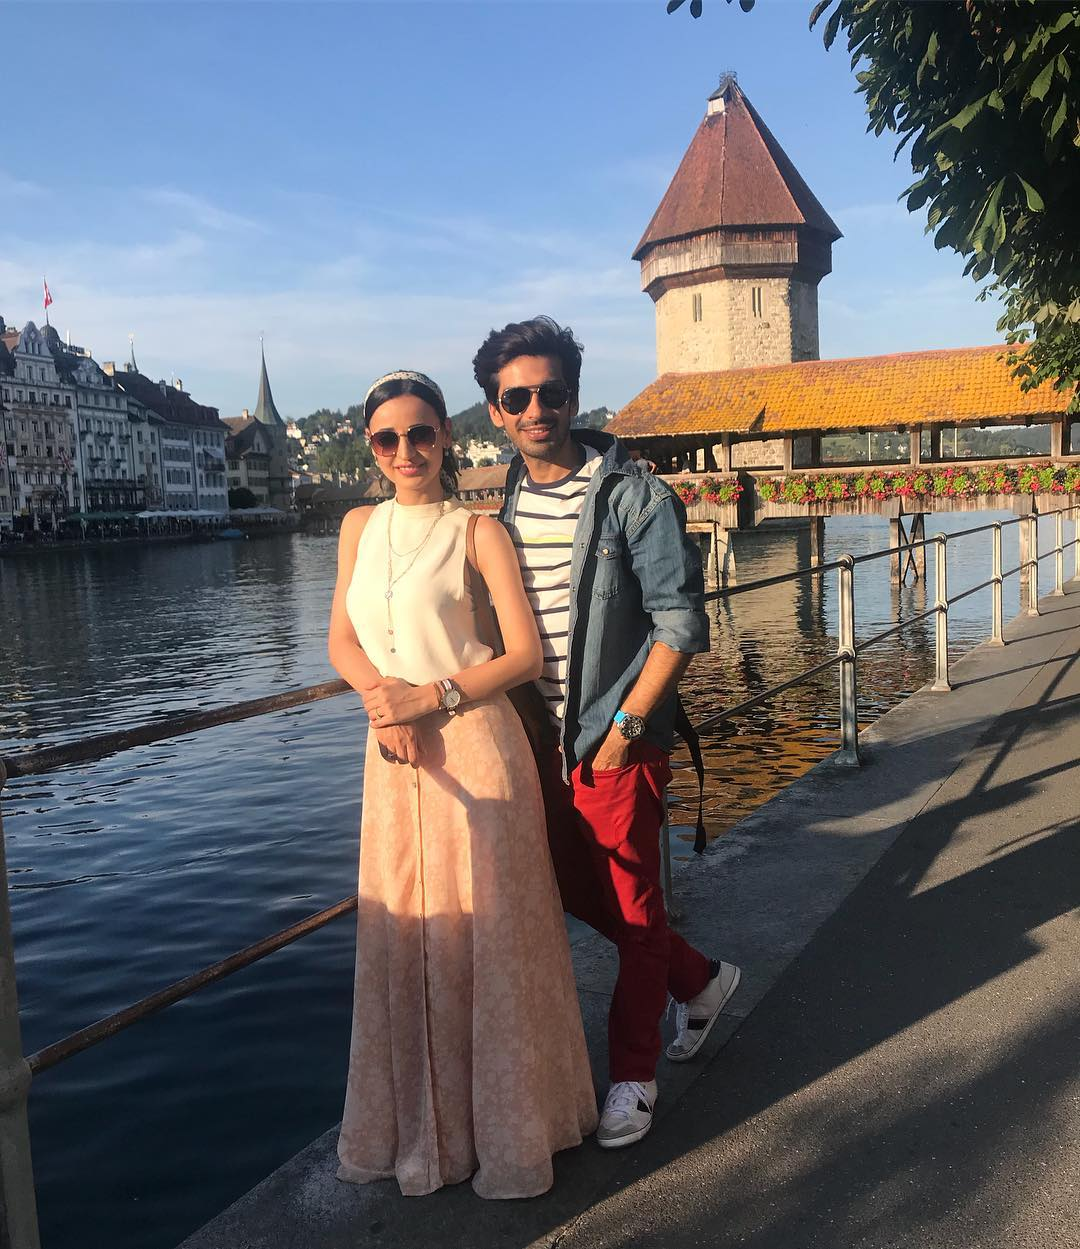 8 sanaya irani - sun kissed photo in switzerland